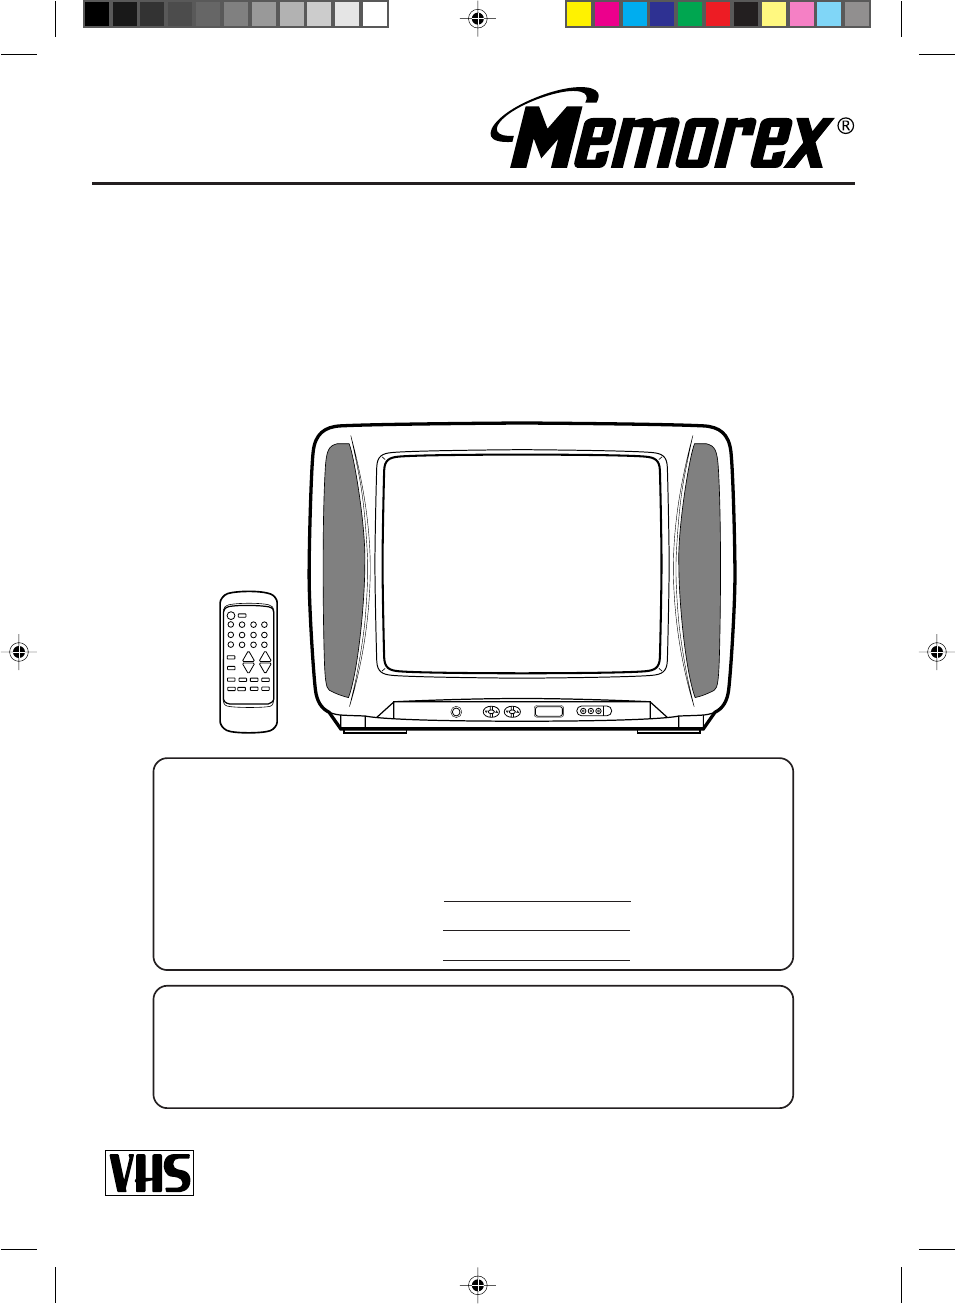 memorex flat panel television mt1120a user guide